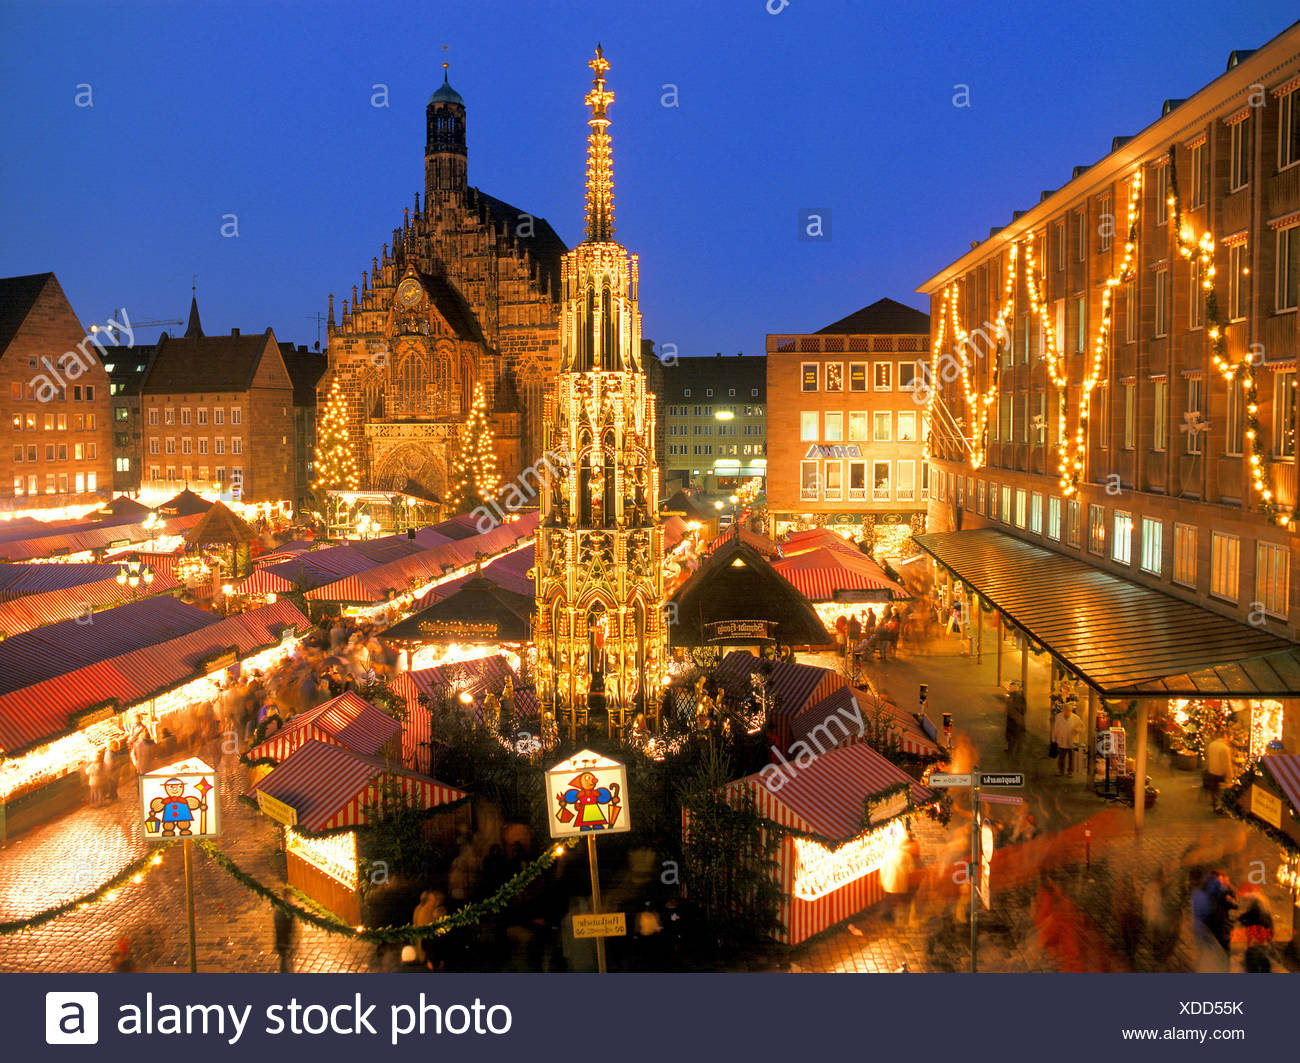 Nuremberg Christmas Market.Nuremberg Christmas Market Stock Photo 283645871 Alamy